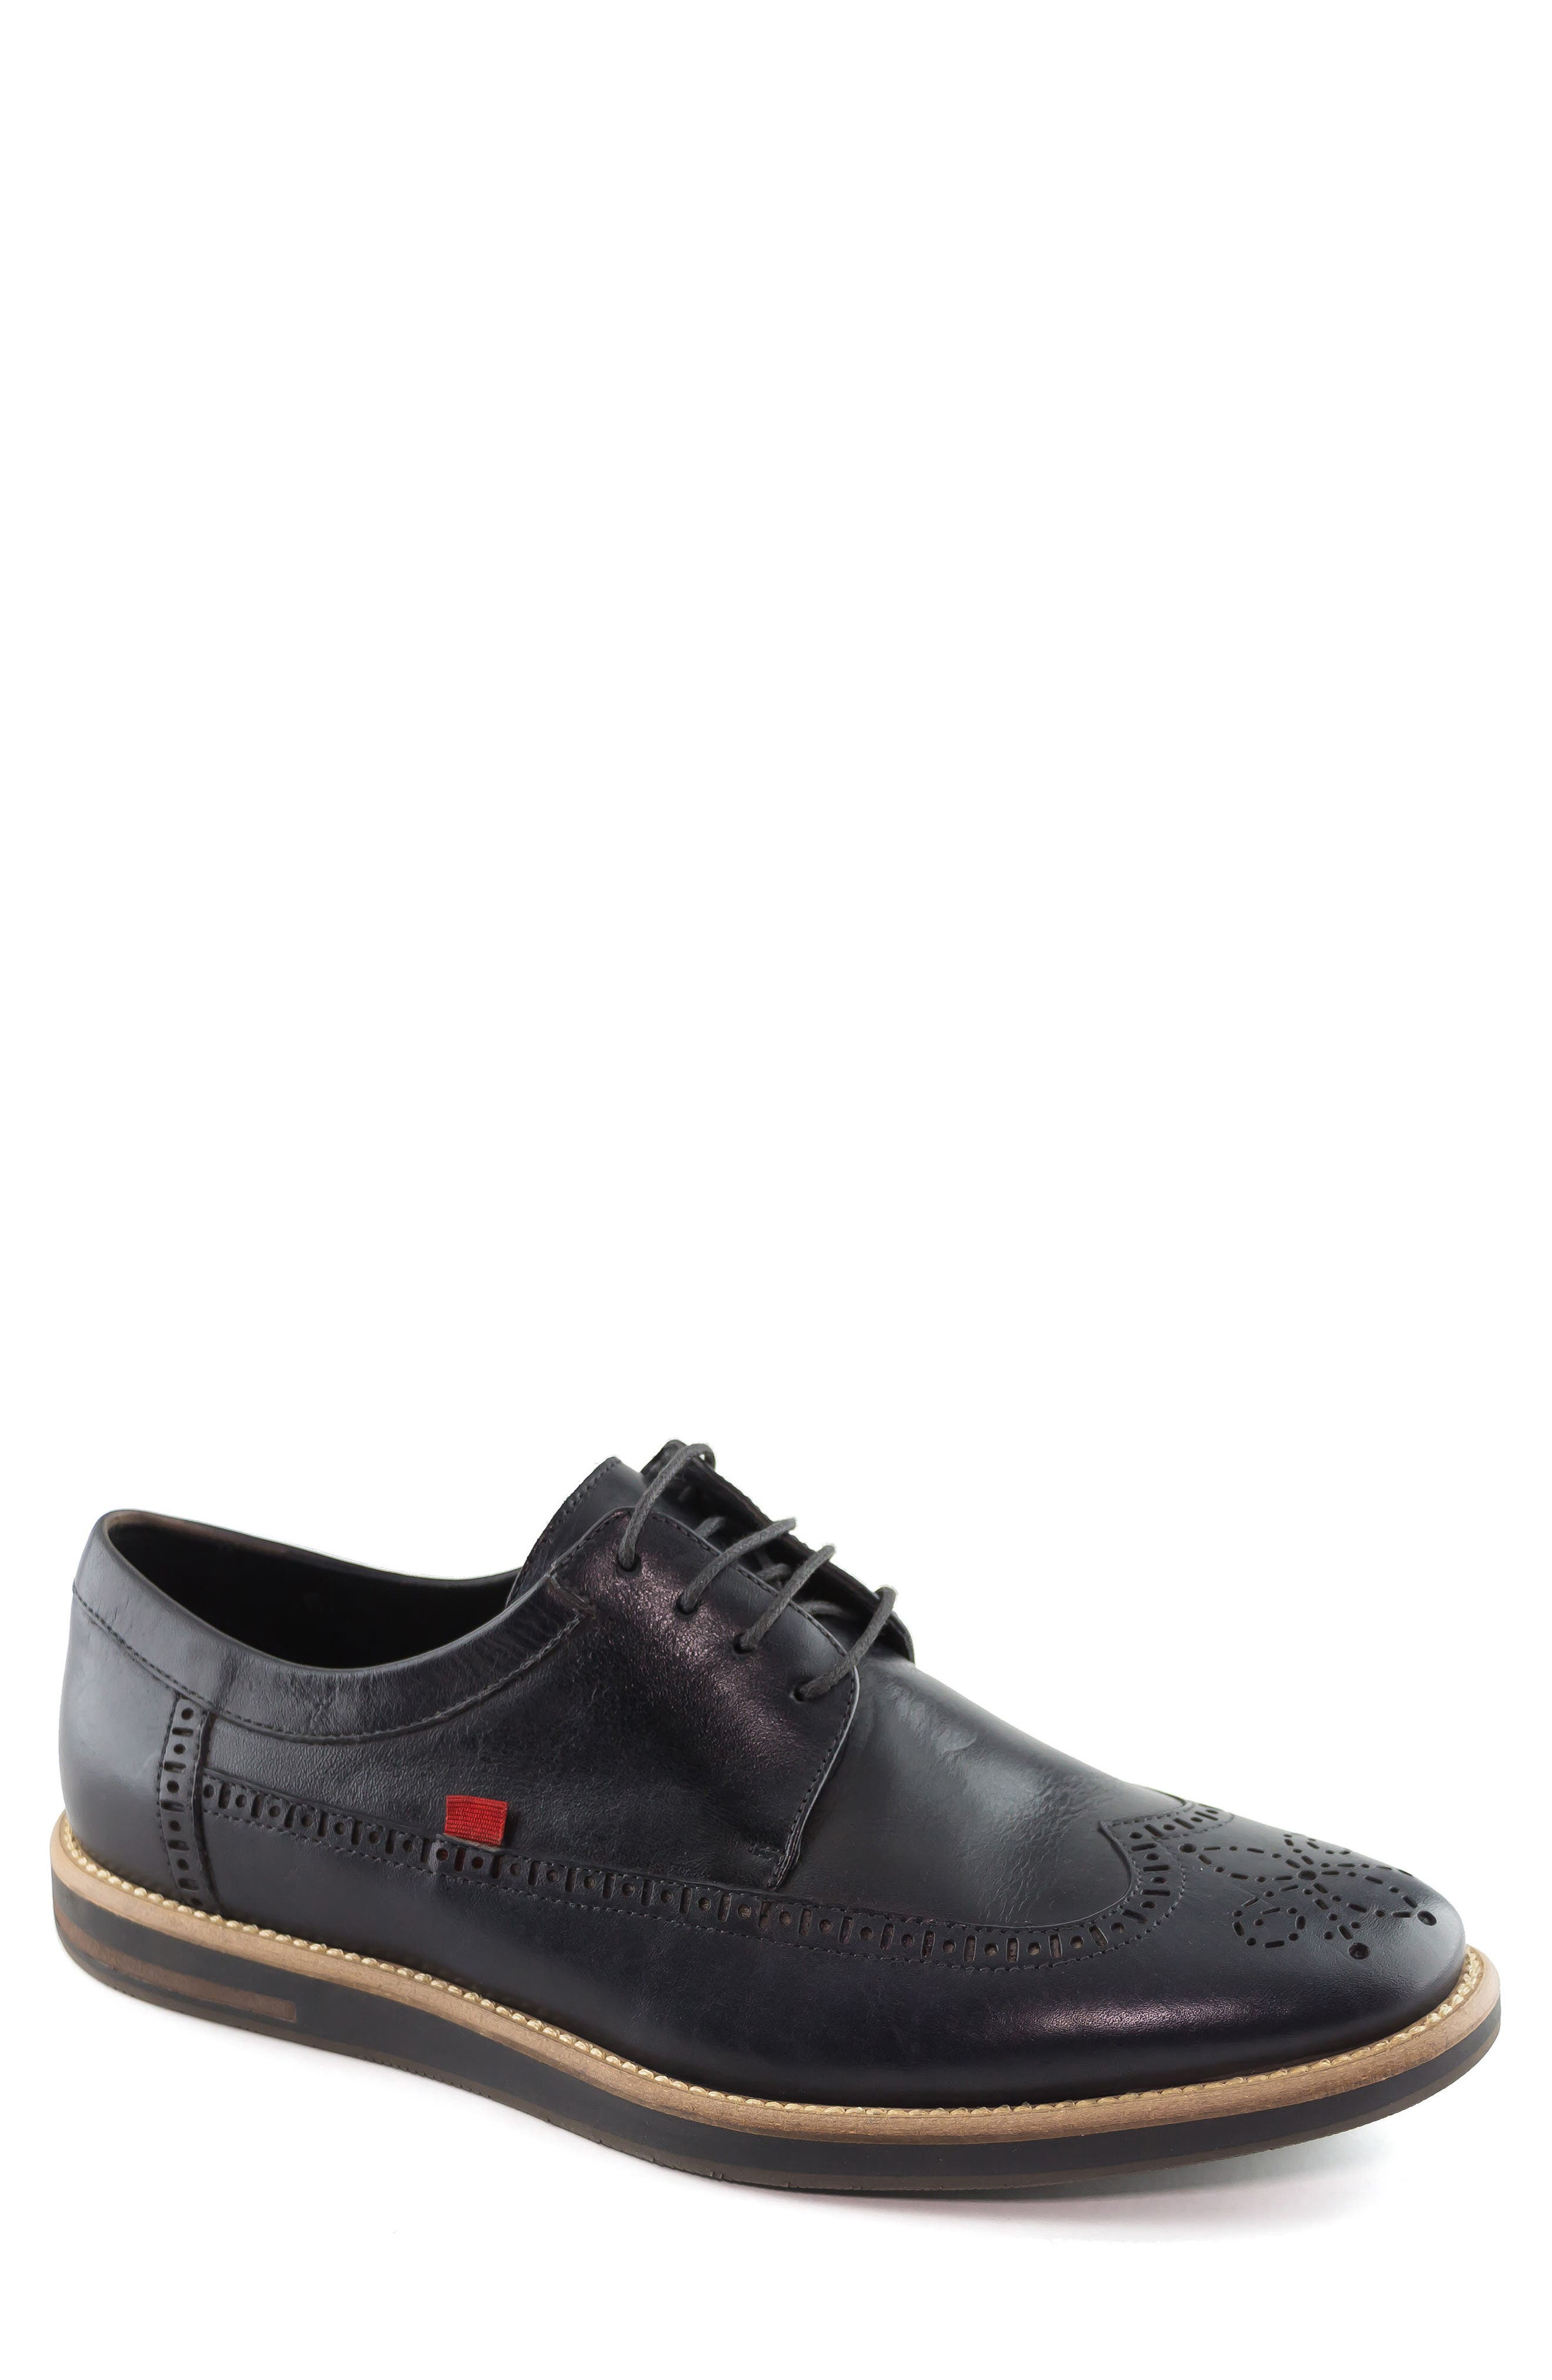 Marc Joseph New Yrok NYC Wingtip,                         Main,                         color,